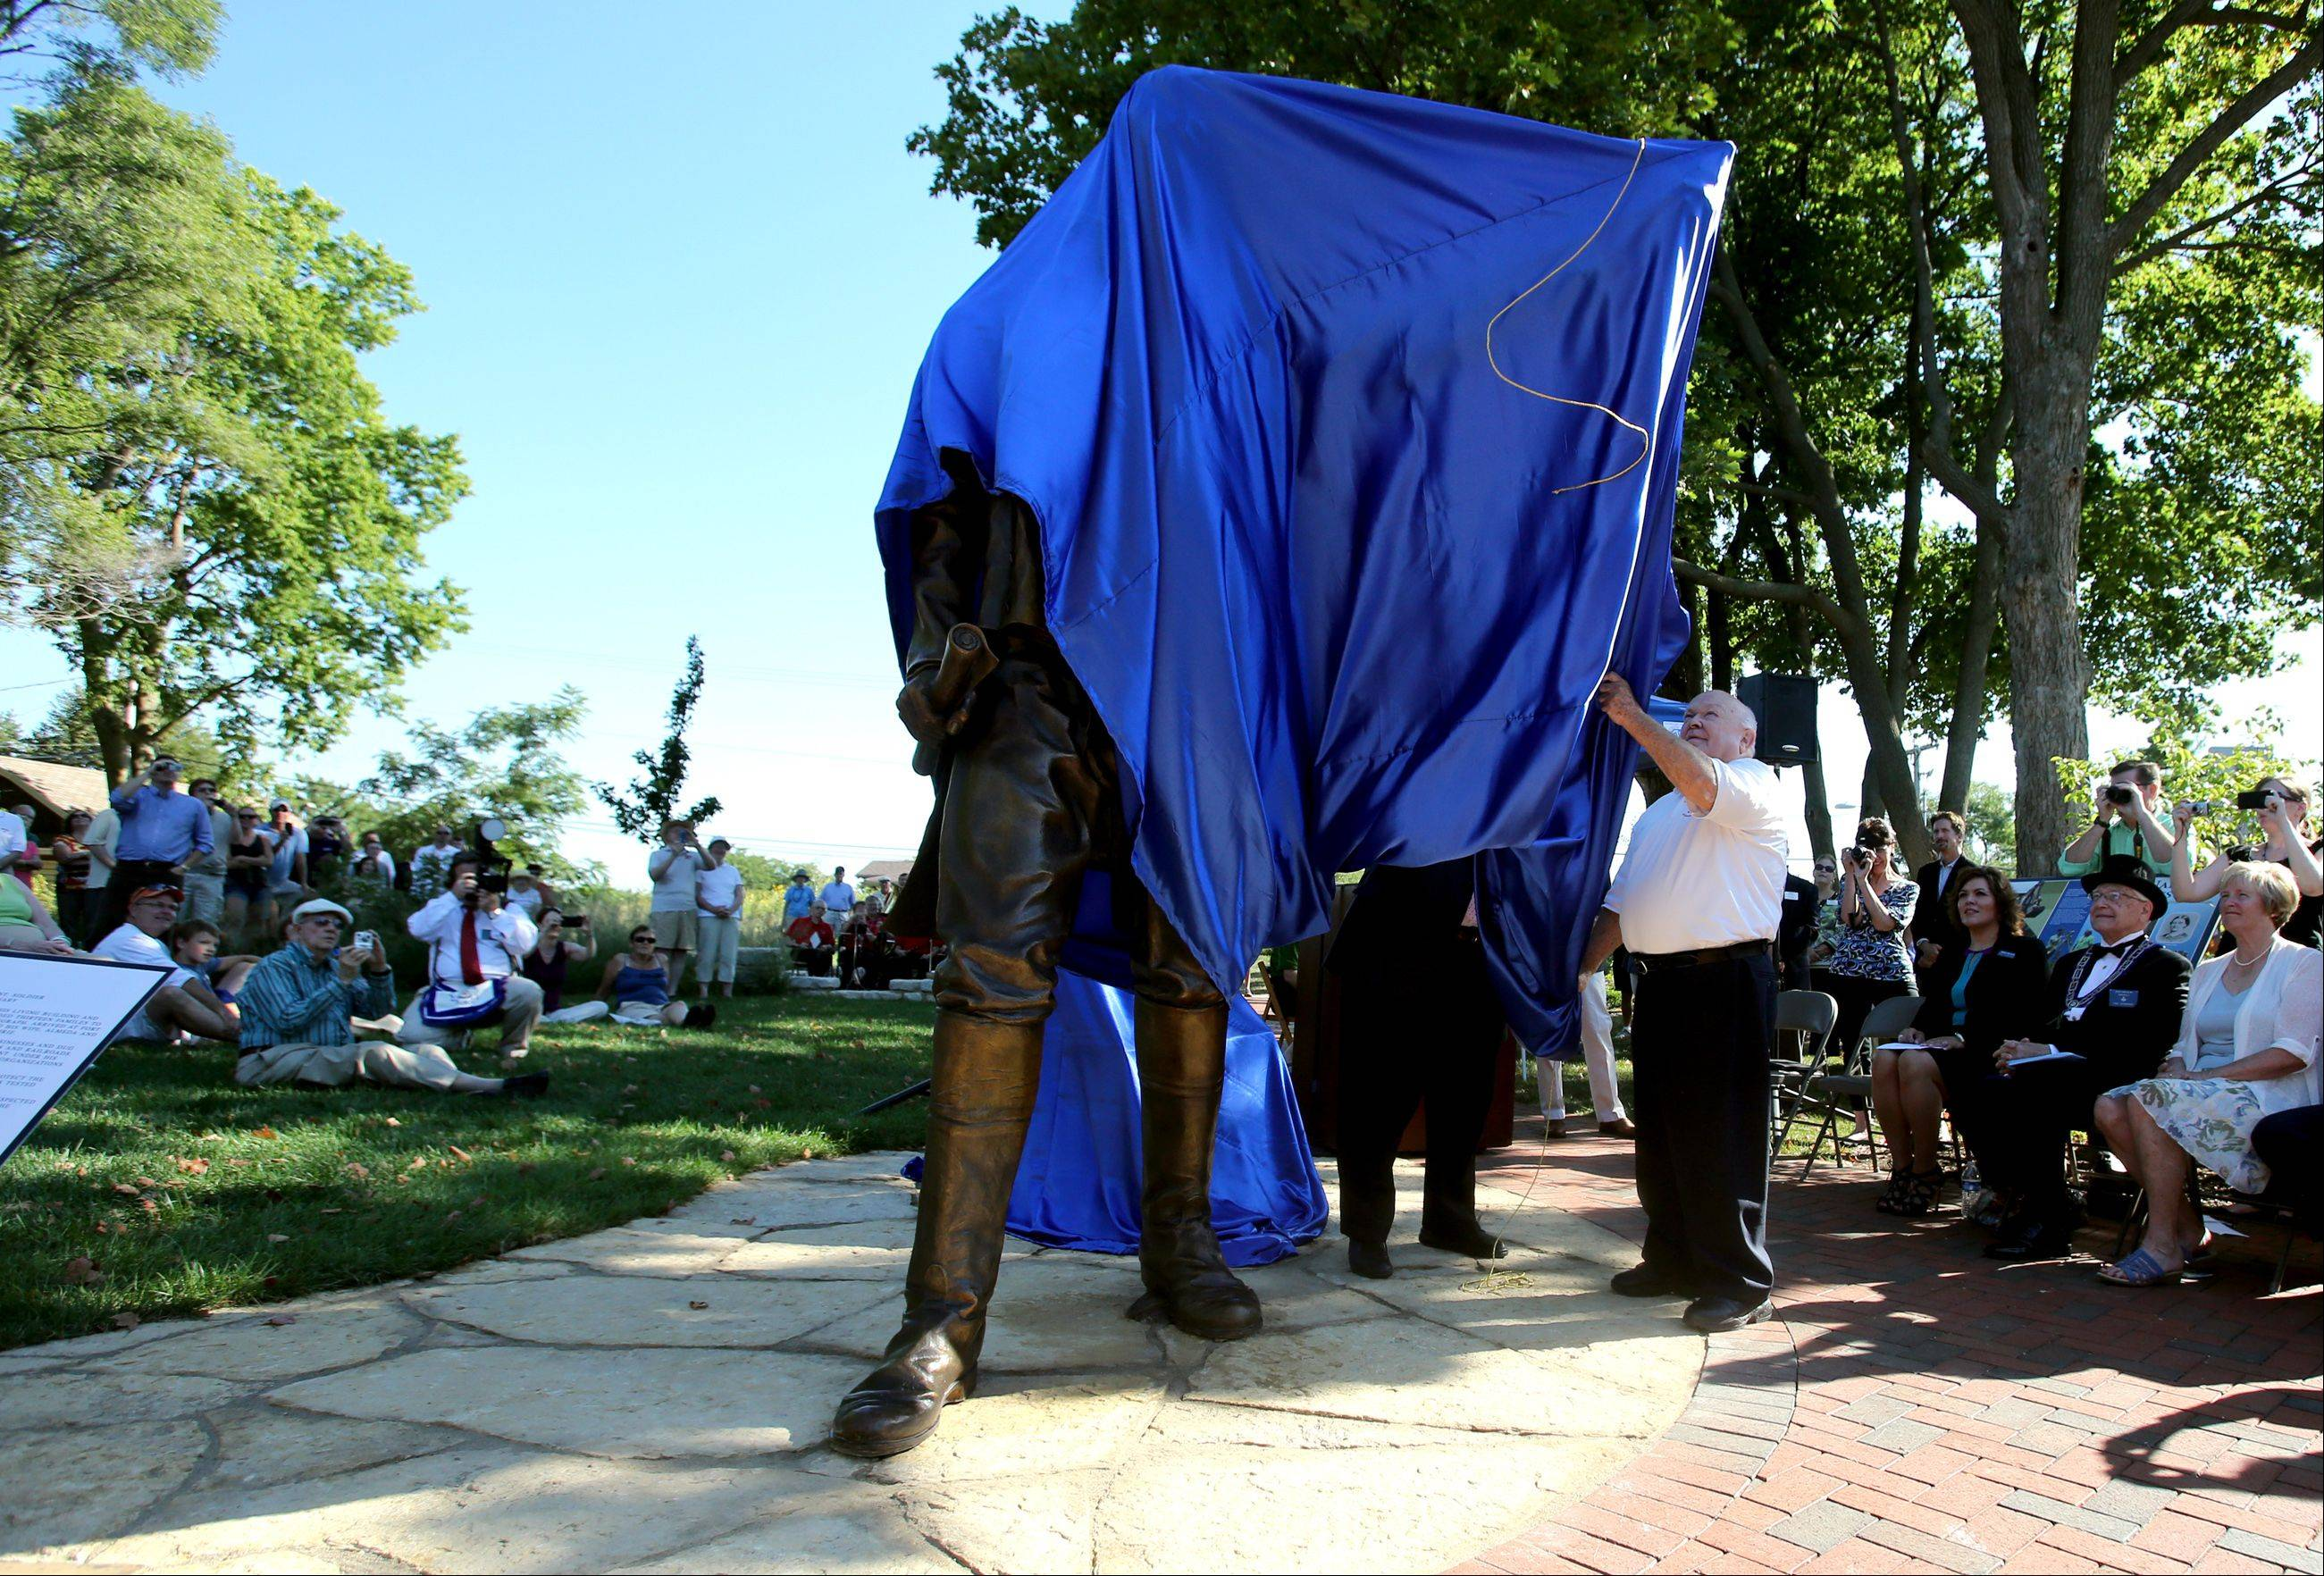 Naperville Mayor George Pradel unveils a sculpture of town founder Joseph Naper Friday at the Naper Homestead historic interpretive site. The 1,500-pound bronze sculpture is 9 1/2 feet tall.